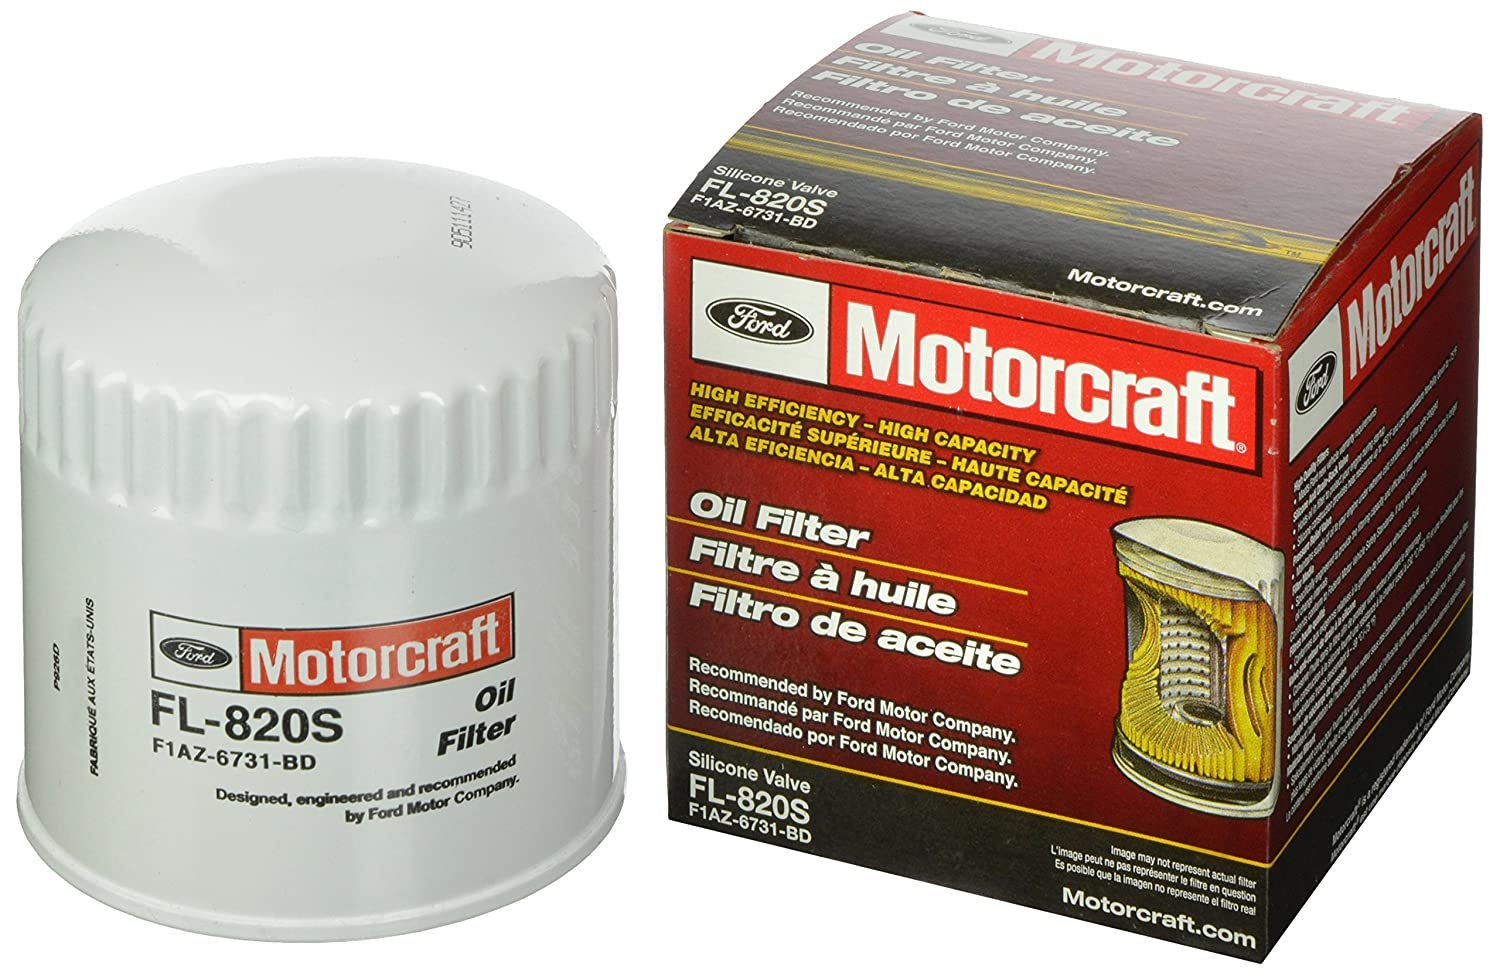 Motorcraft Fl820s Silicone Valve Oil Filter Automotive 1992 Ford F 250 Fuel Filters